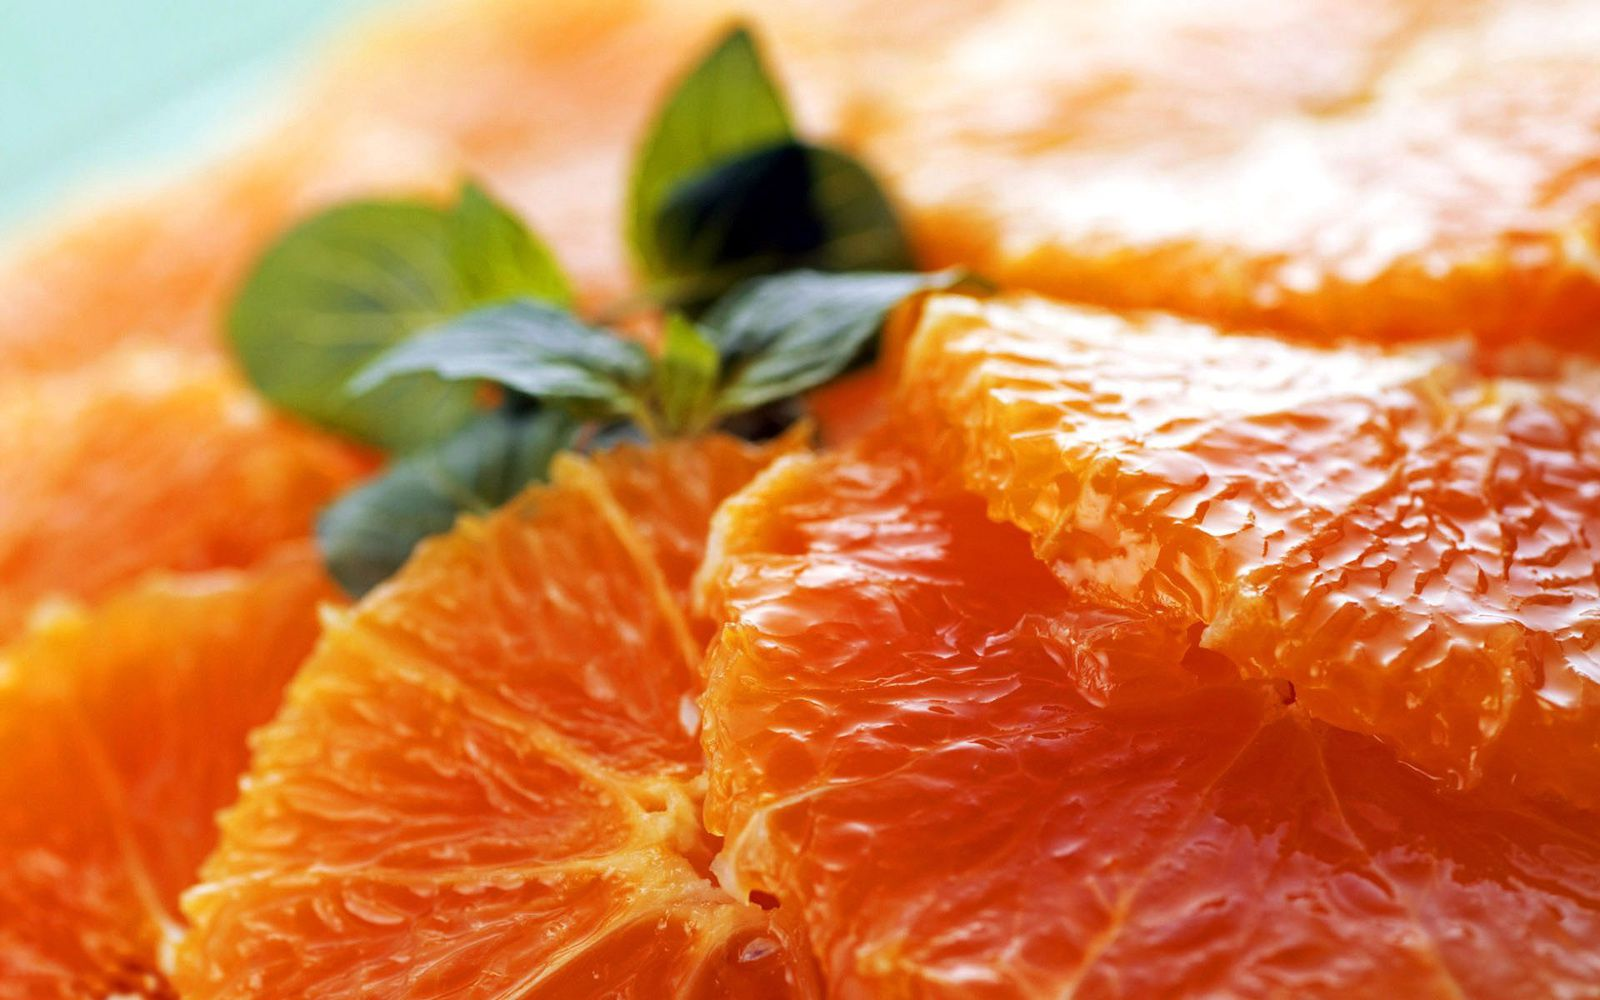 Orange - Tranches - Fruits - Wallpaper - Free